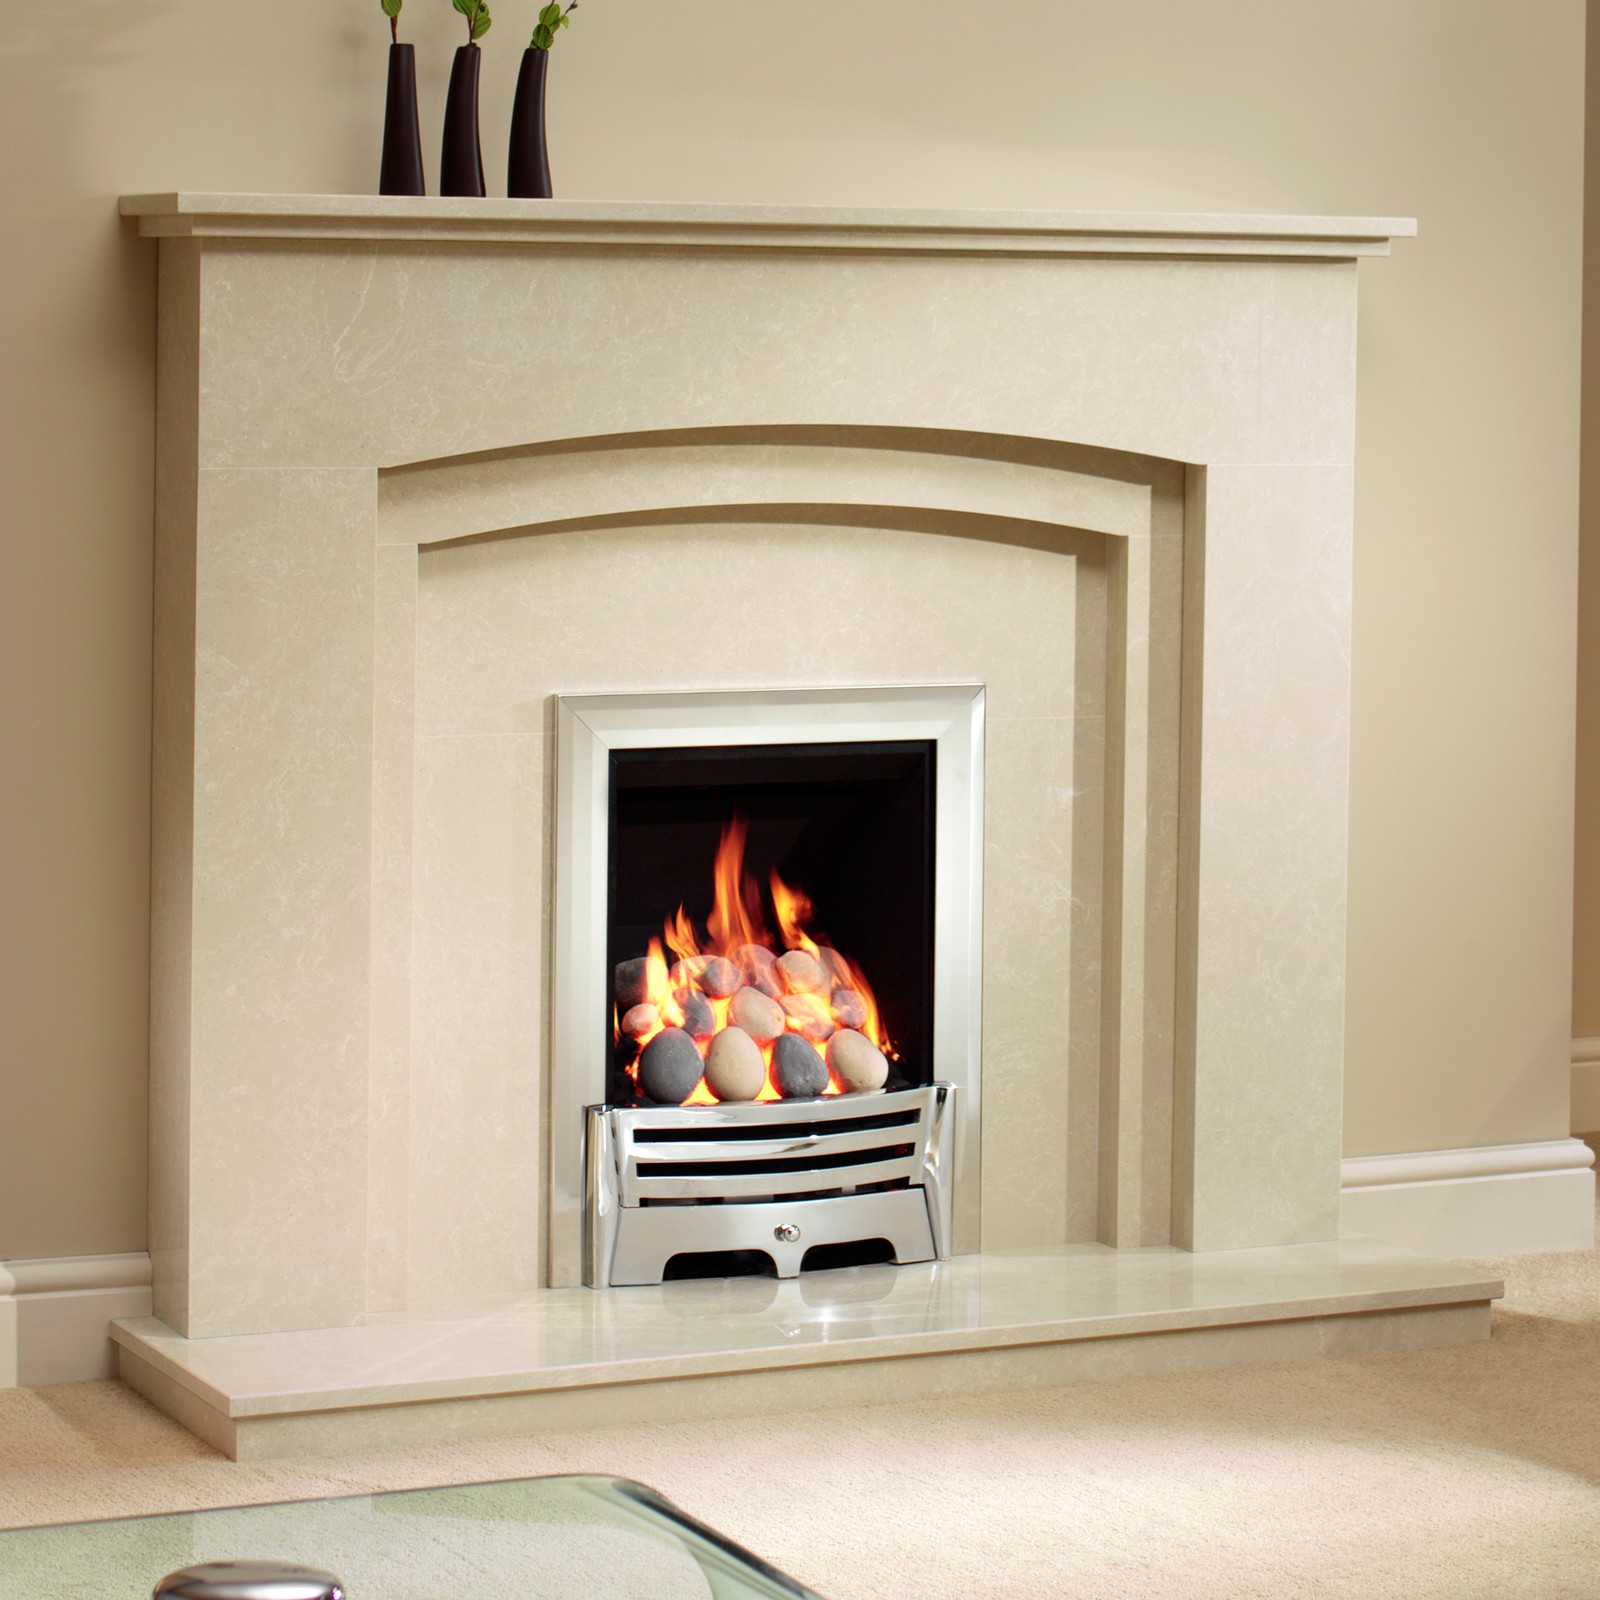 Beautiful Modern Fire Be Modern Rossano Manila Micro Marble Fireplace Suite